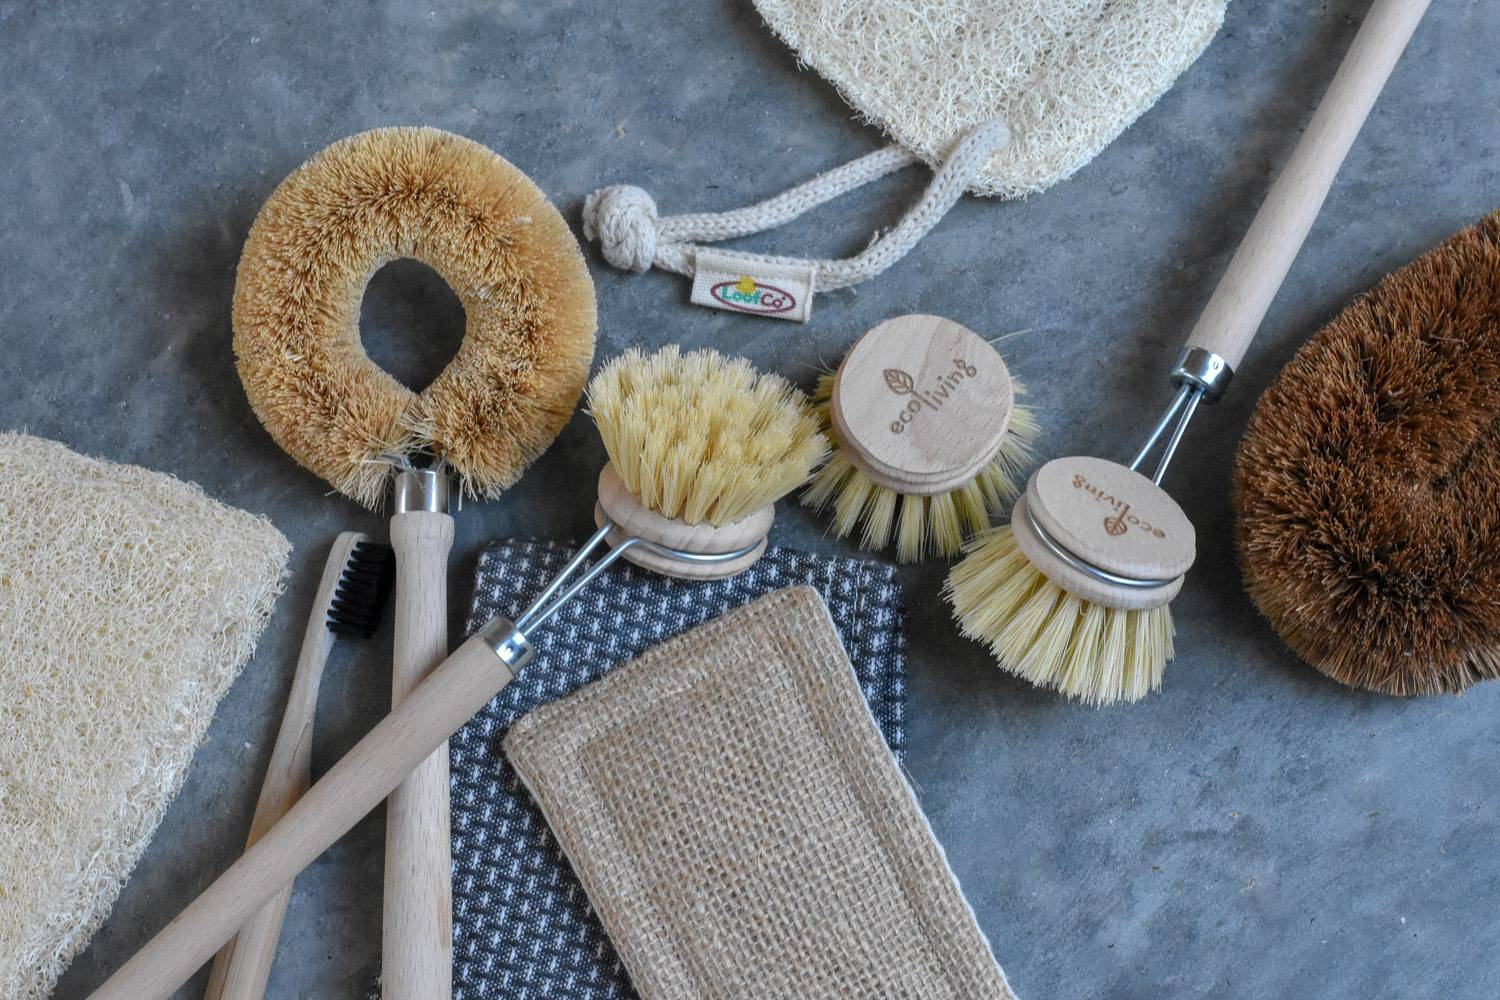 brushes & cloths - Dish brushes with replaceable heads are a win. The bristles of this Eco Living one are made of biodegradable plant fibres, so you can chuck the whole head in the compost when it's knackered, and pop a new one on.To replace scourers, look out for Loofco and Ecoconut products, both made with coconut husks and natural loofah. Non-scratchy, but still abrasive enough to get the job done.We've had a bunch of e-clothes for over five years that finally needed to be replaced. They have been brilliant, but, because they are made with a synthetic material, they shed plastic micro-fibres every time they are used I didn't want to buy them again. I've found these from Eco Egg instead. Same deal - long-lasting, and designed to kill germs with just water. But, made from wood fibres. It's the small things, right.